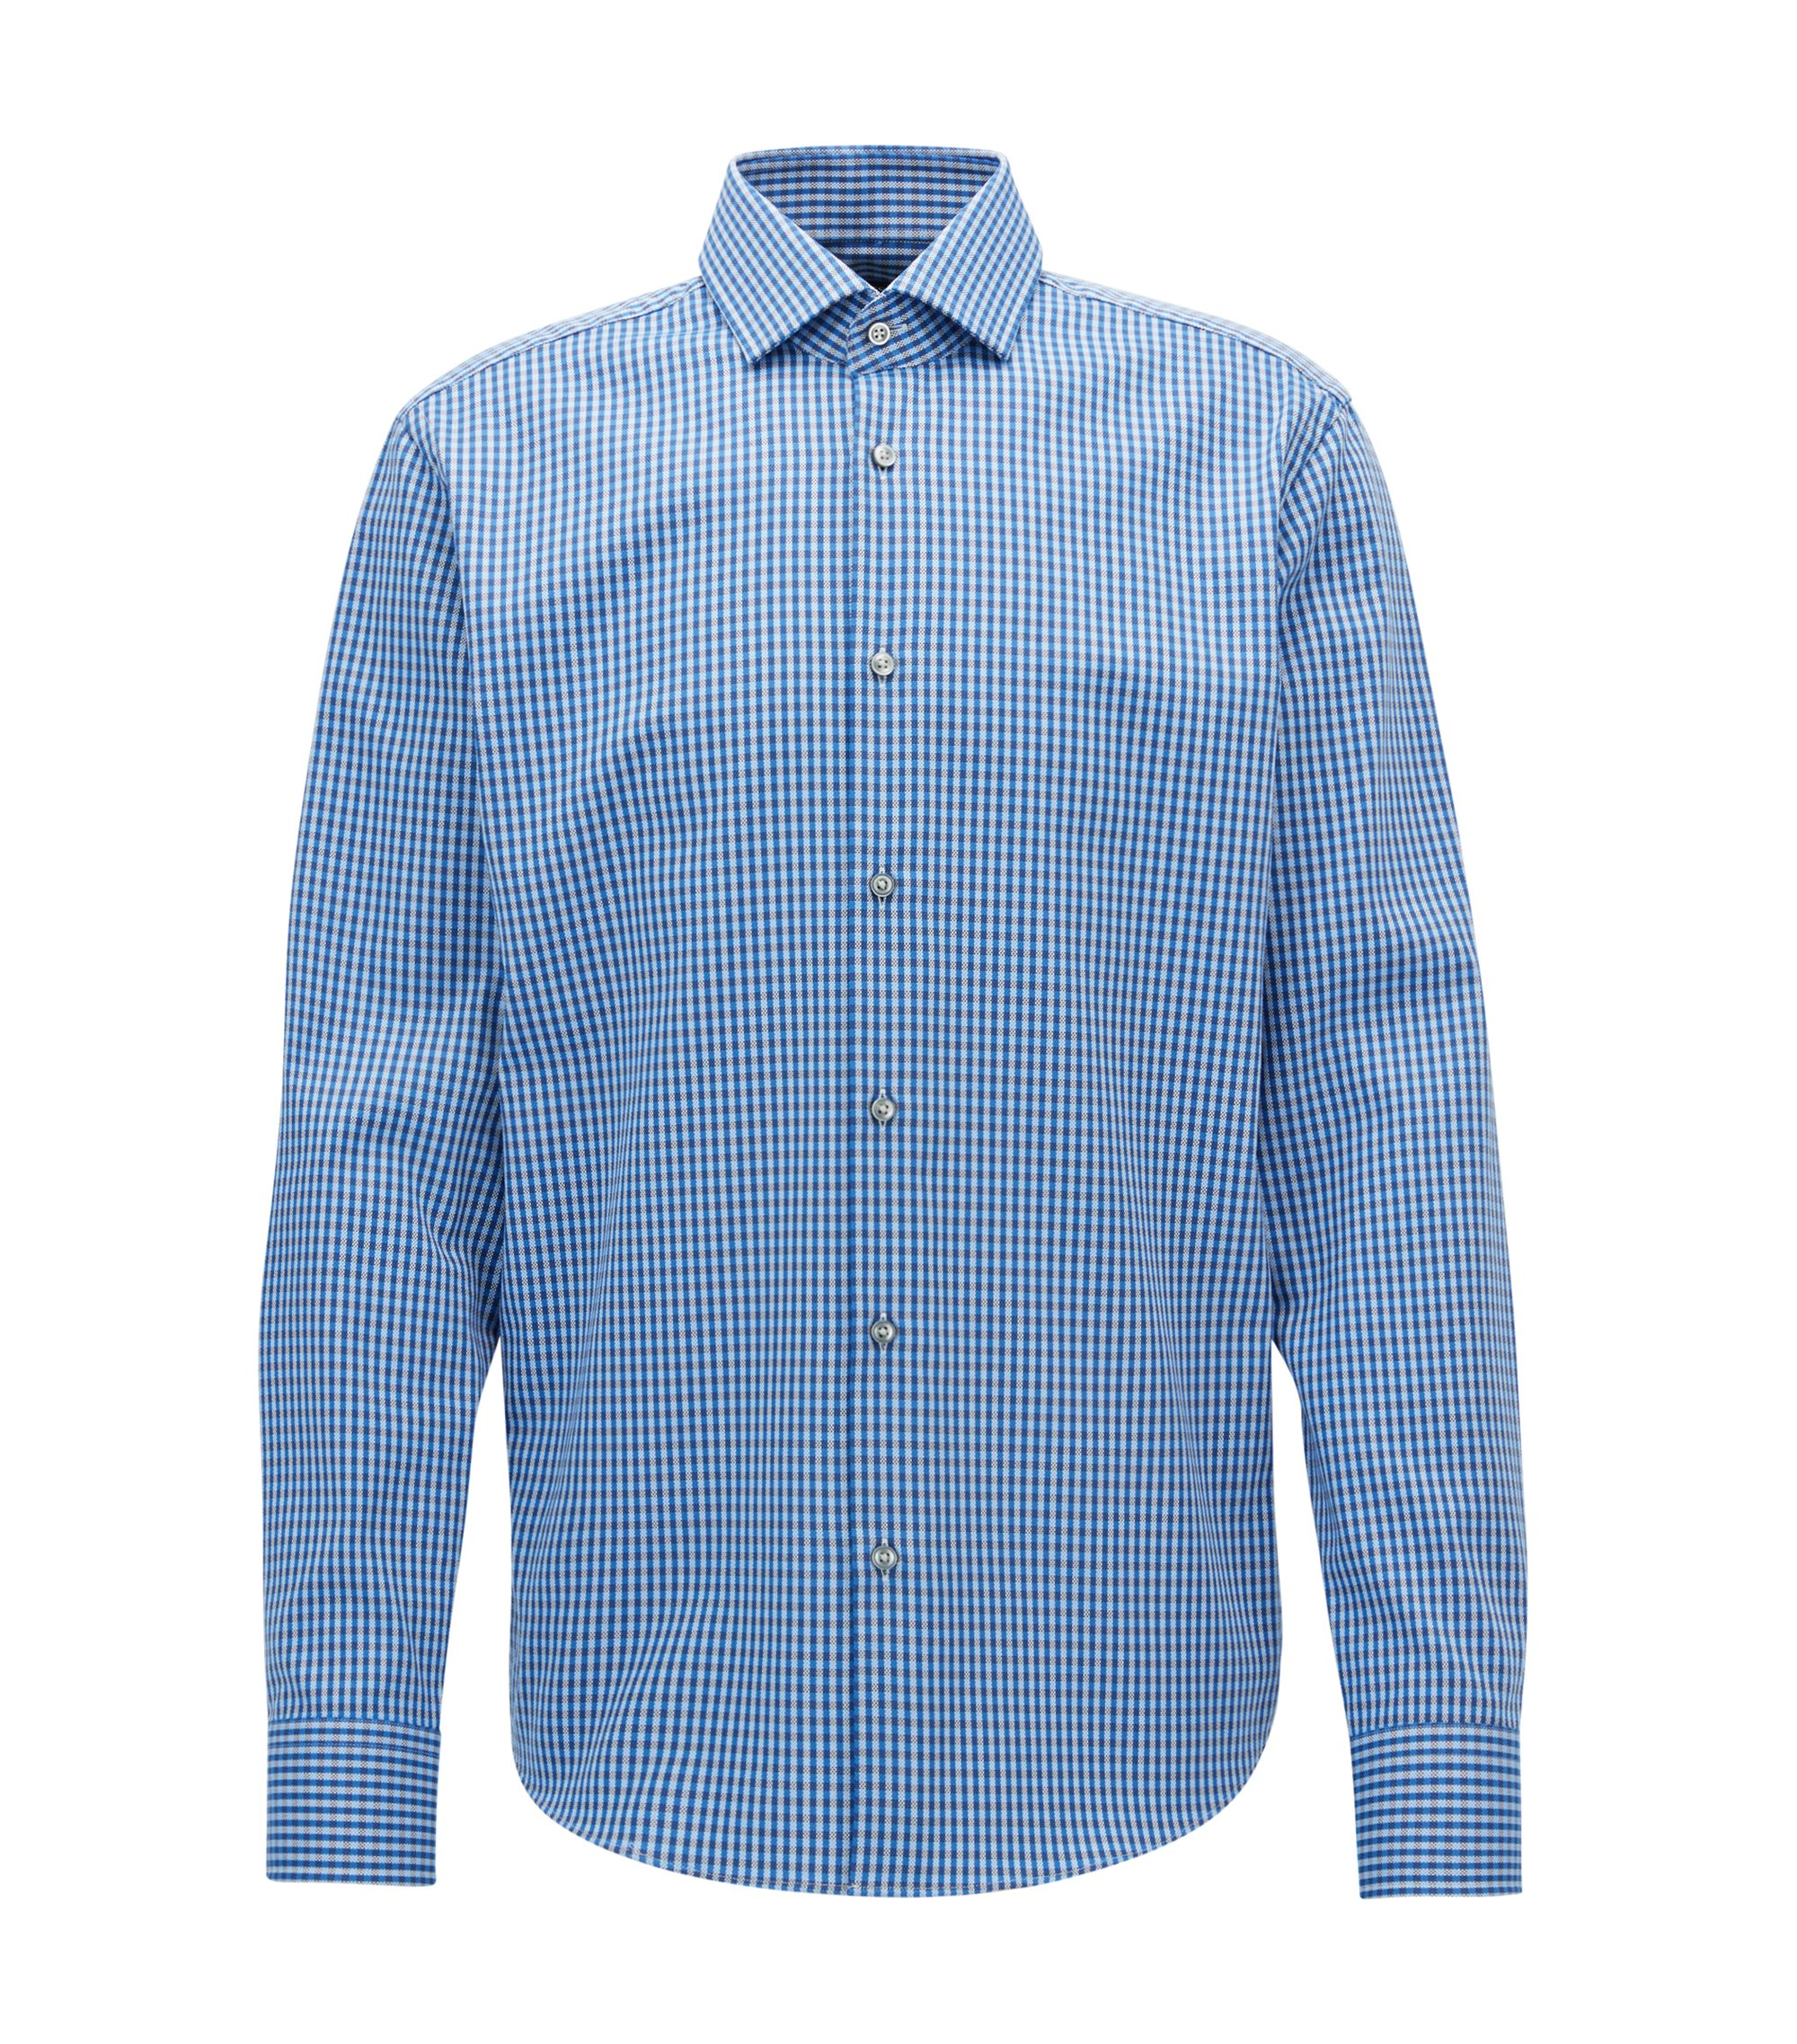 Chemise Regular Fit à carreaux en coton Oxford avec finition Fresh Active, Bleu